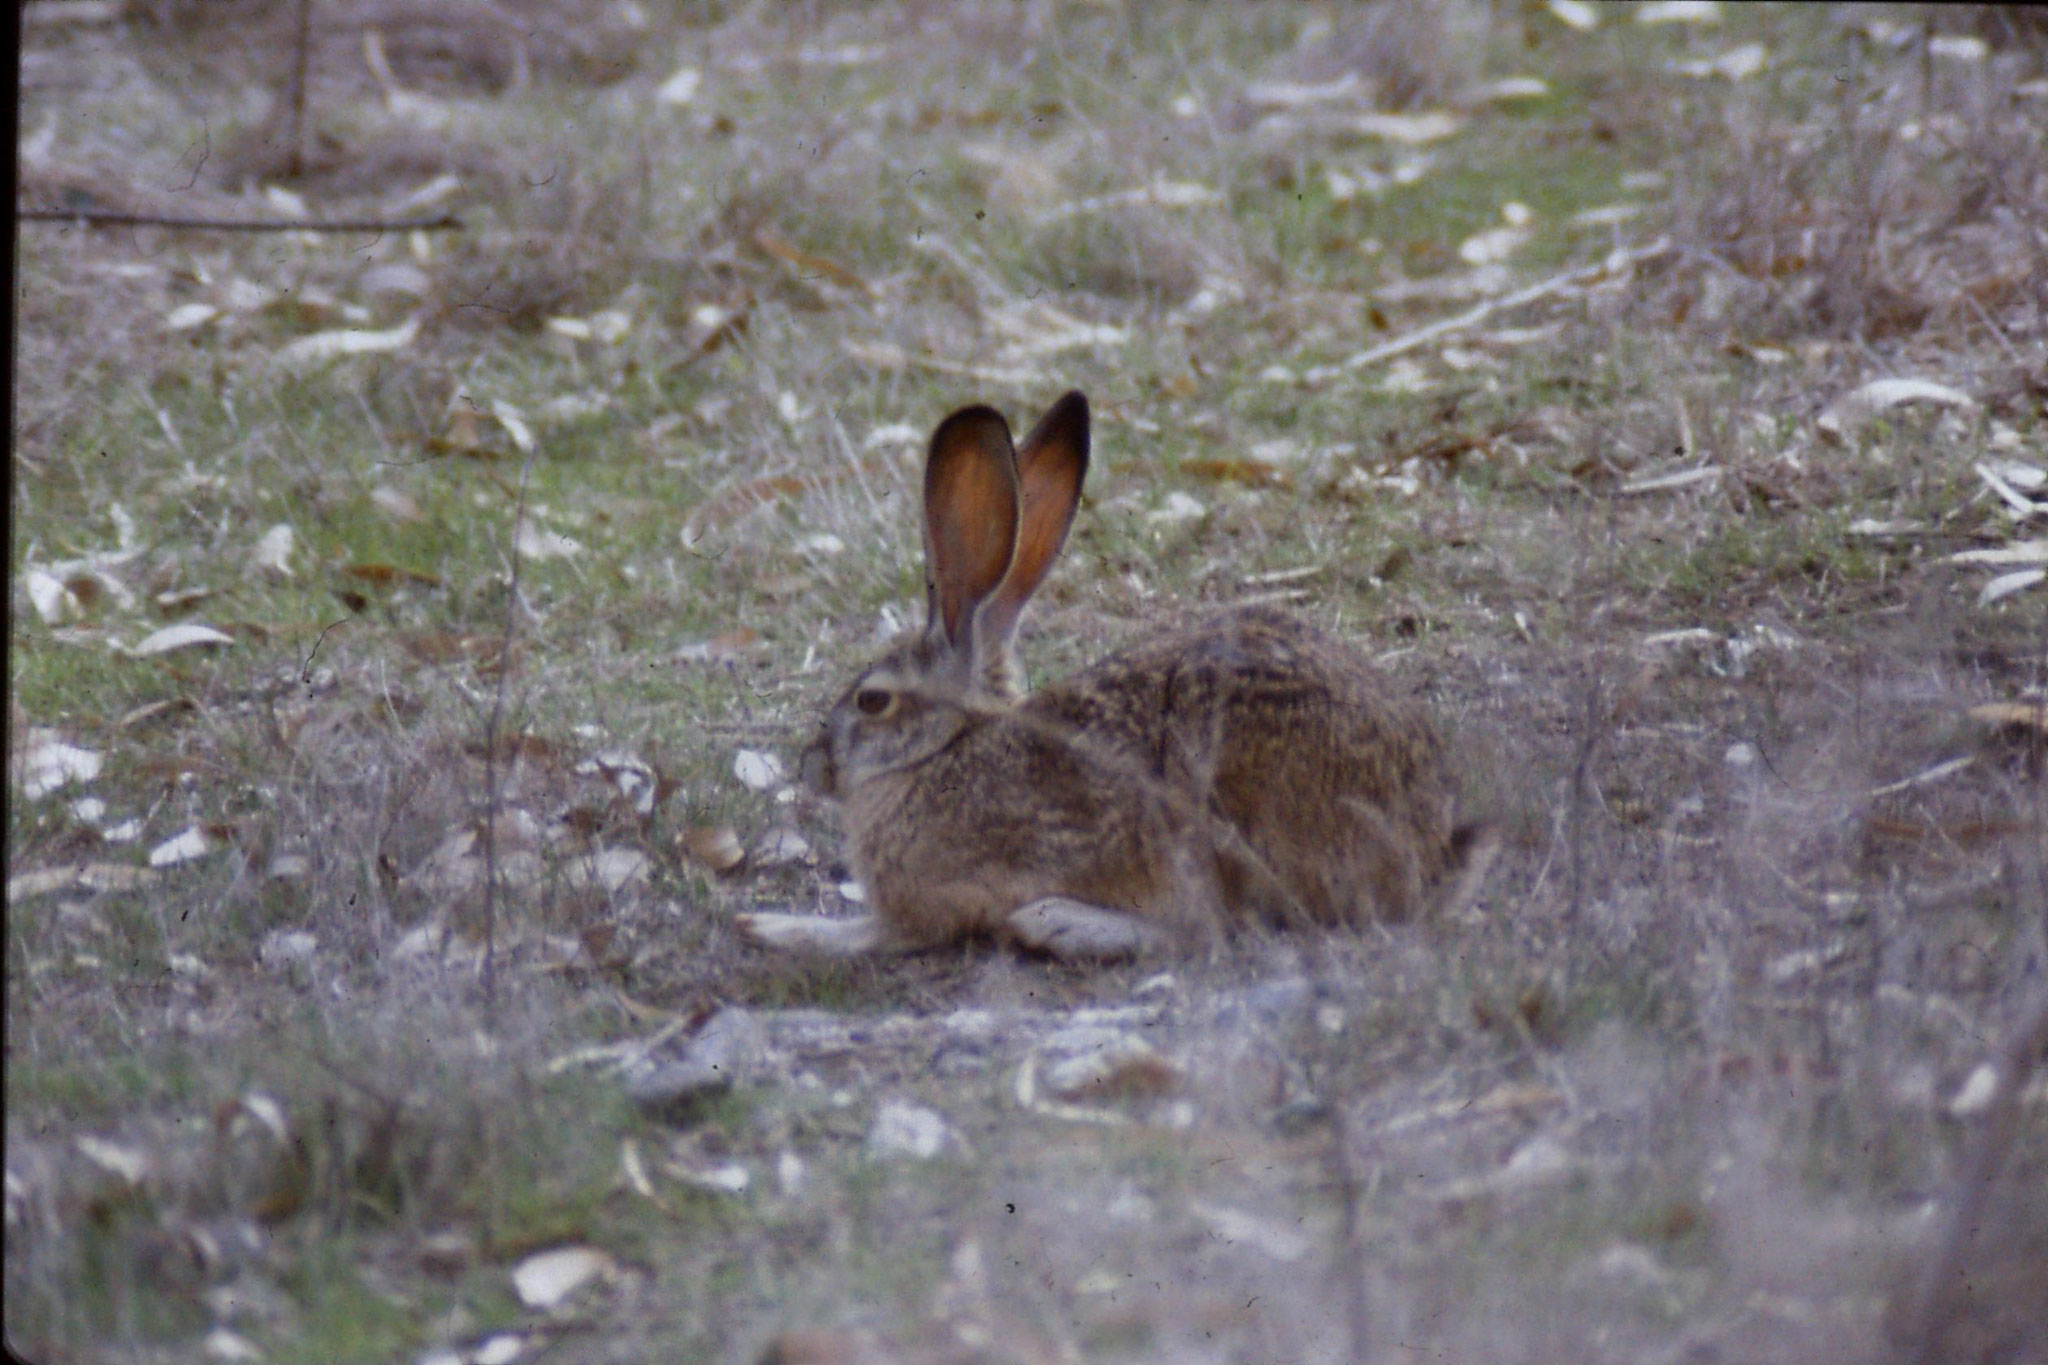 15/2/1991: 15: Sacramento NWR, Black Tailed Jack Rabbit